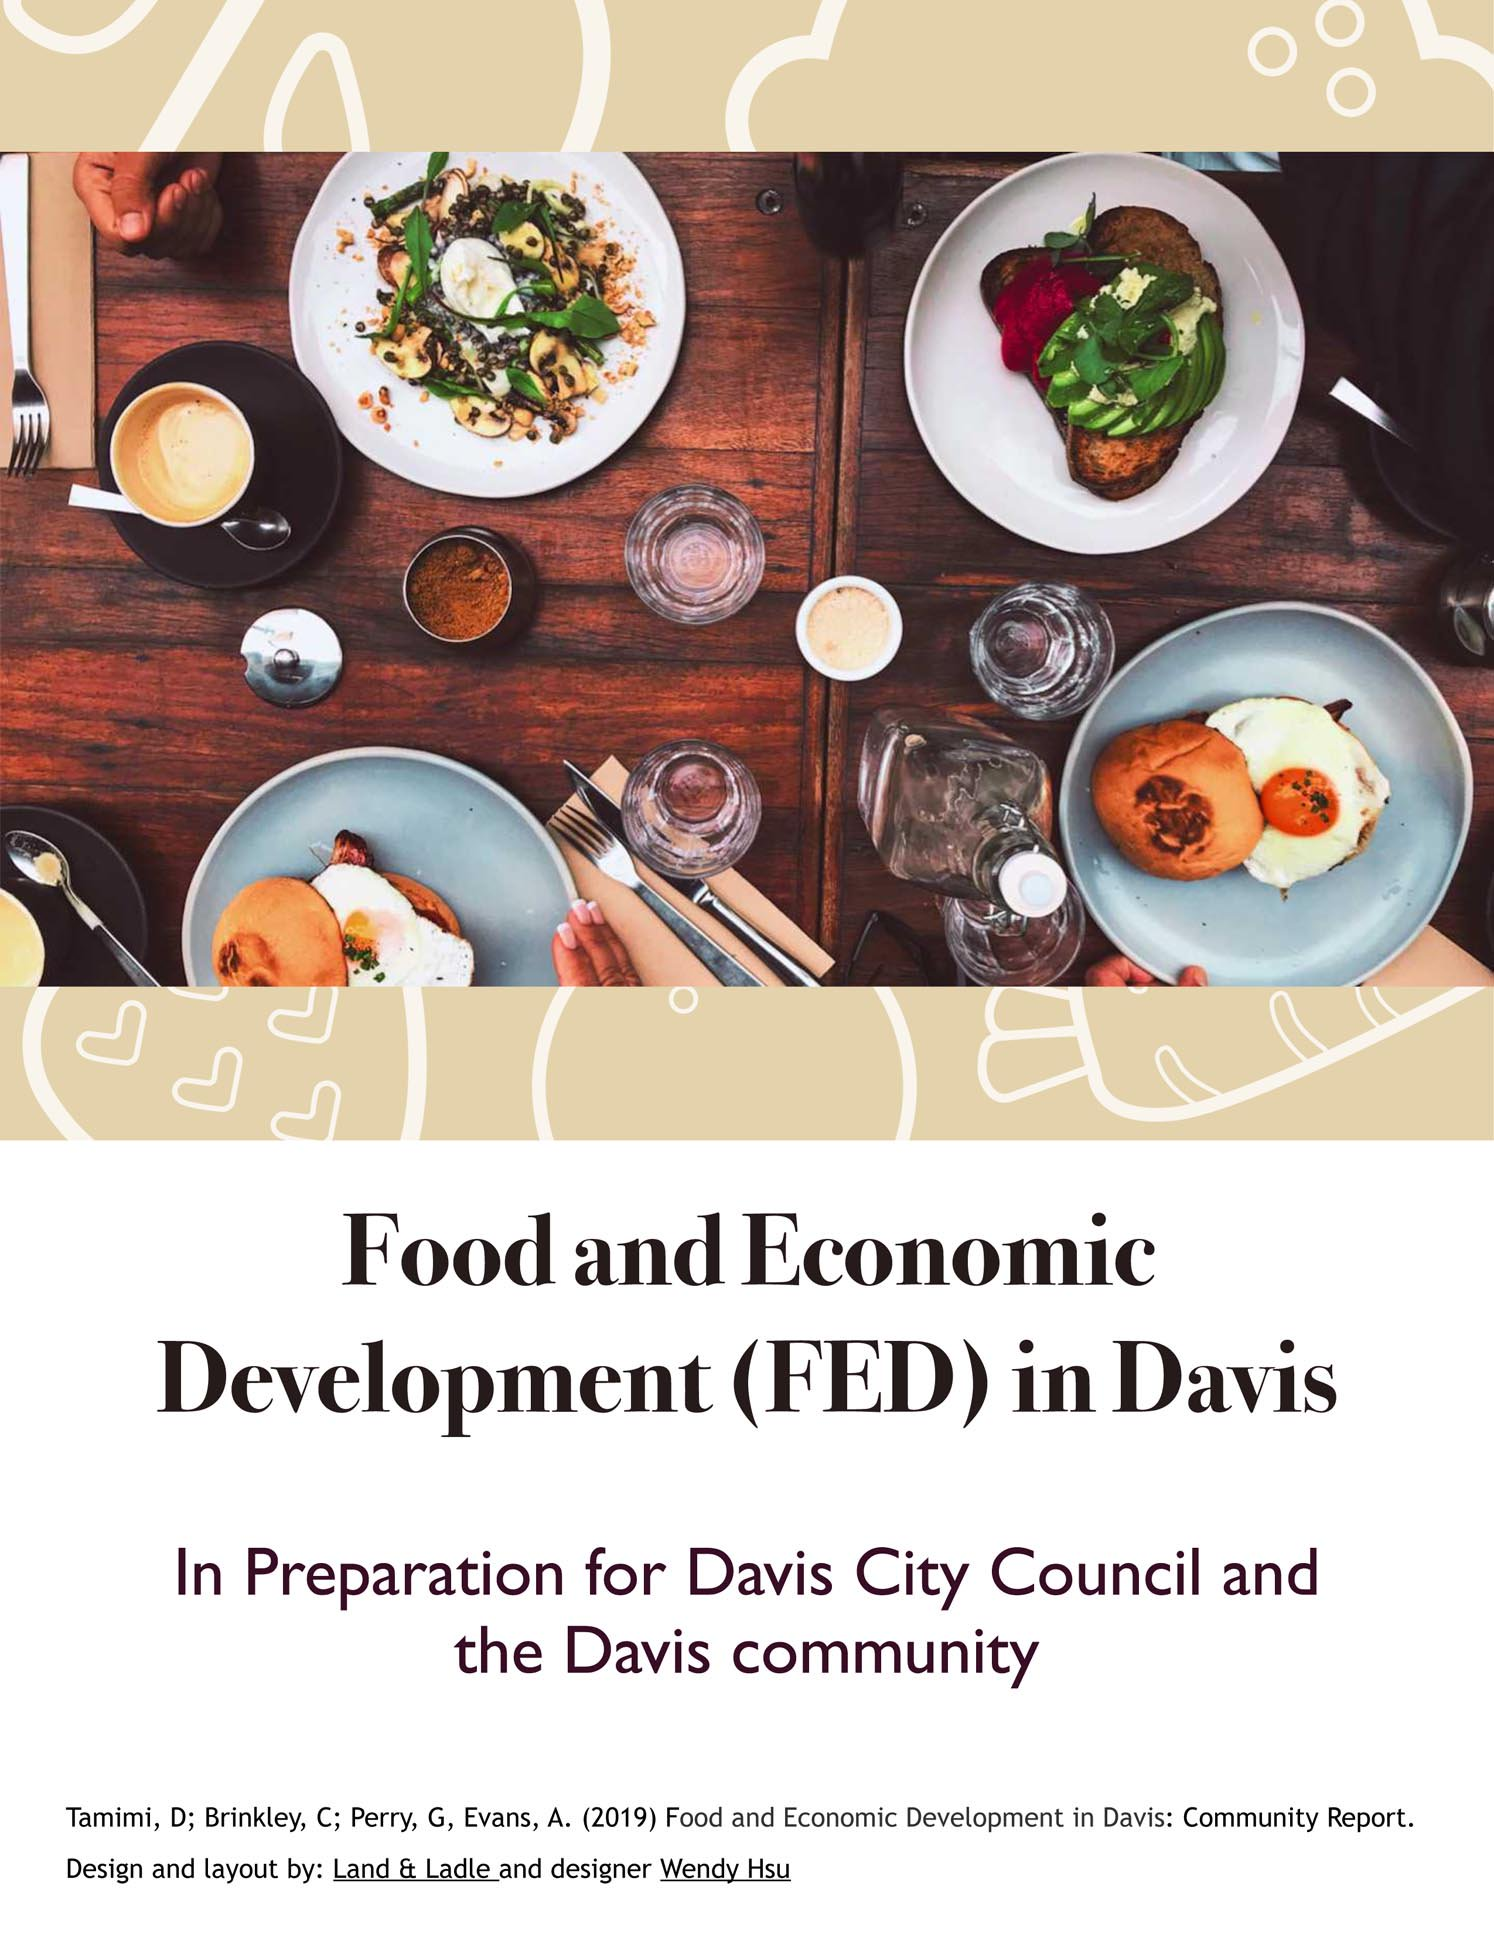 Food and Economic Development (FED) in Davis logo